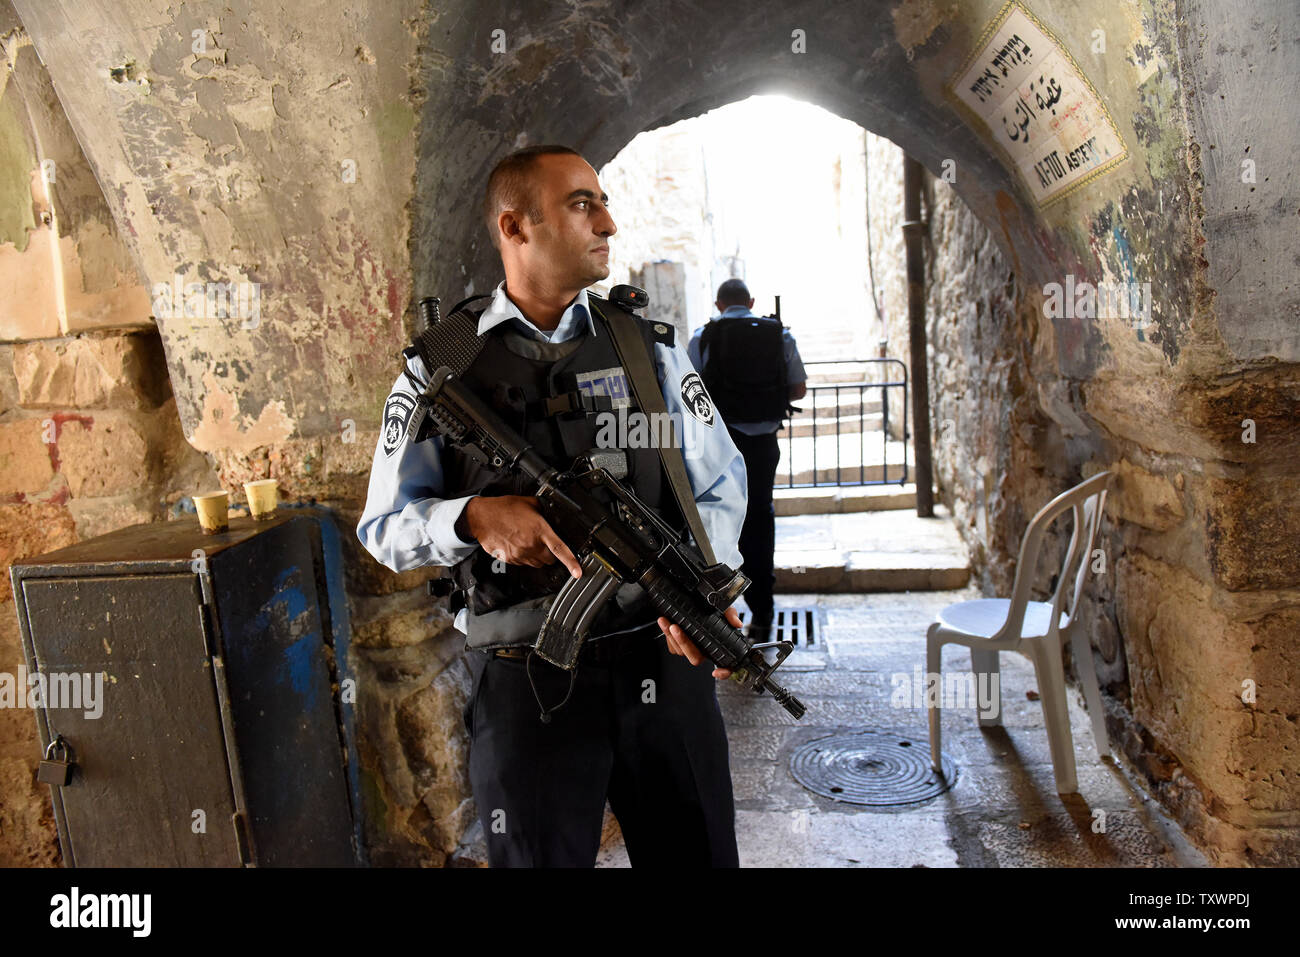 An Israeli police stands guard in the Muslim Quarter of